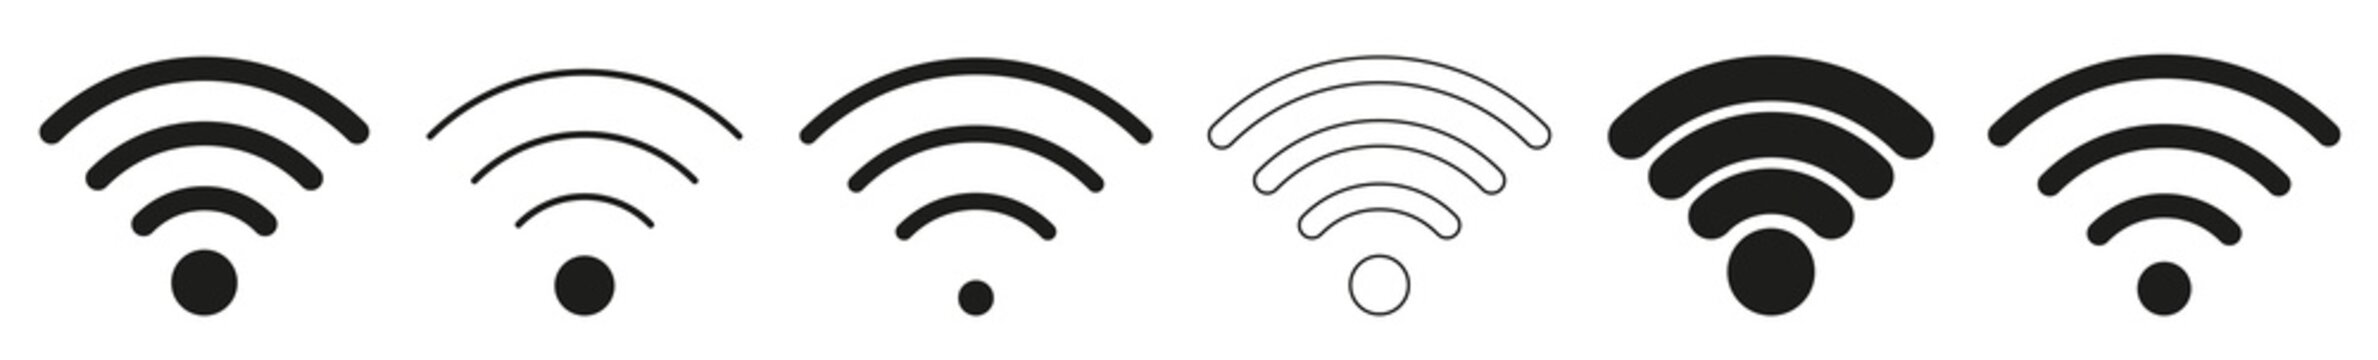 Wireless | Internet Connection | Signal Icon | Variations